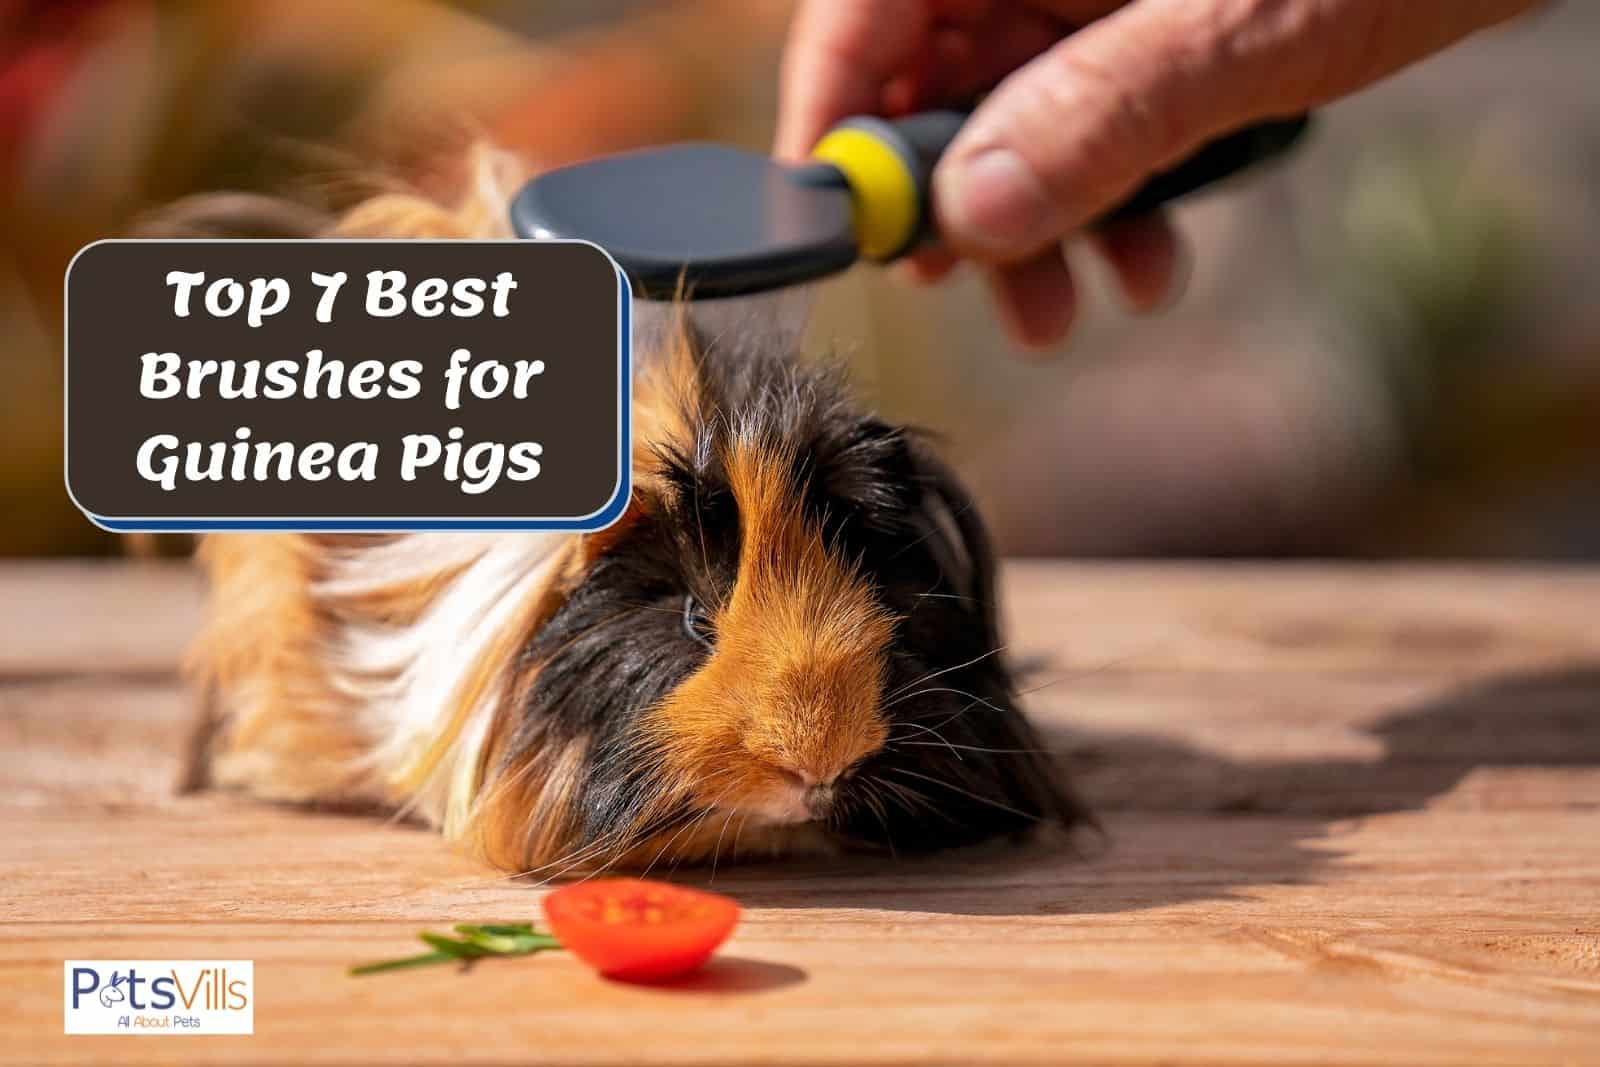 a lady grooming her cavy using the best brushes for guinea pigs